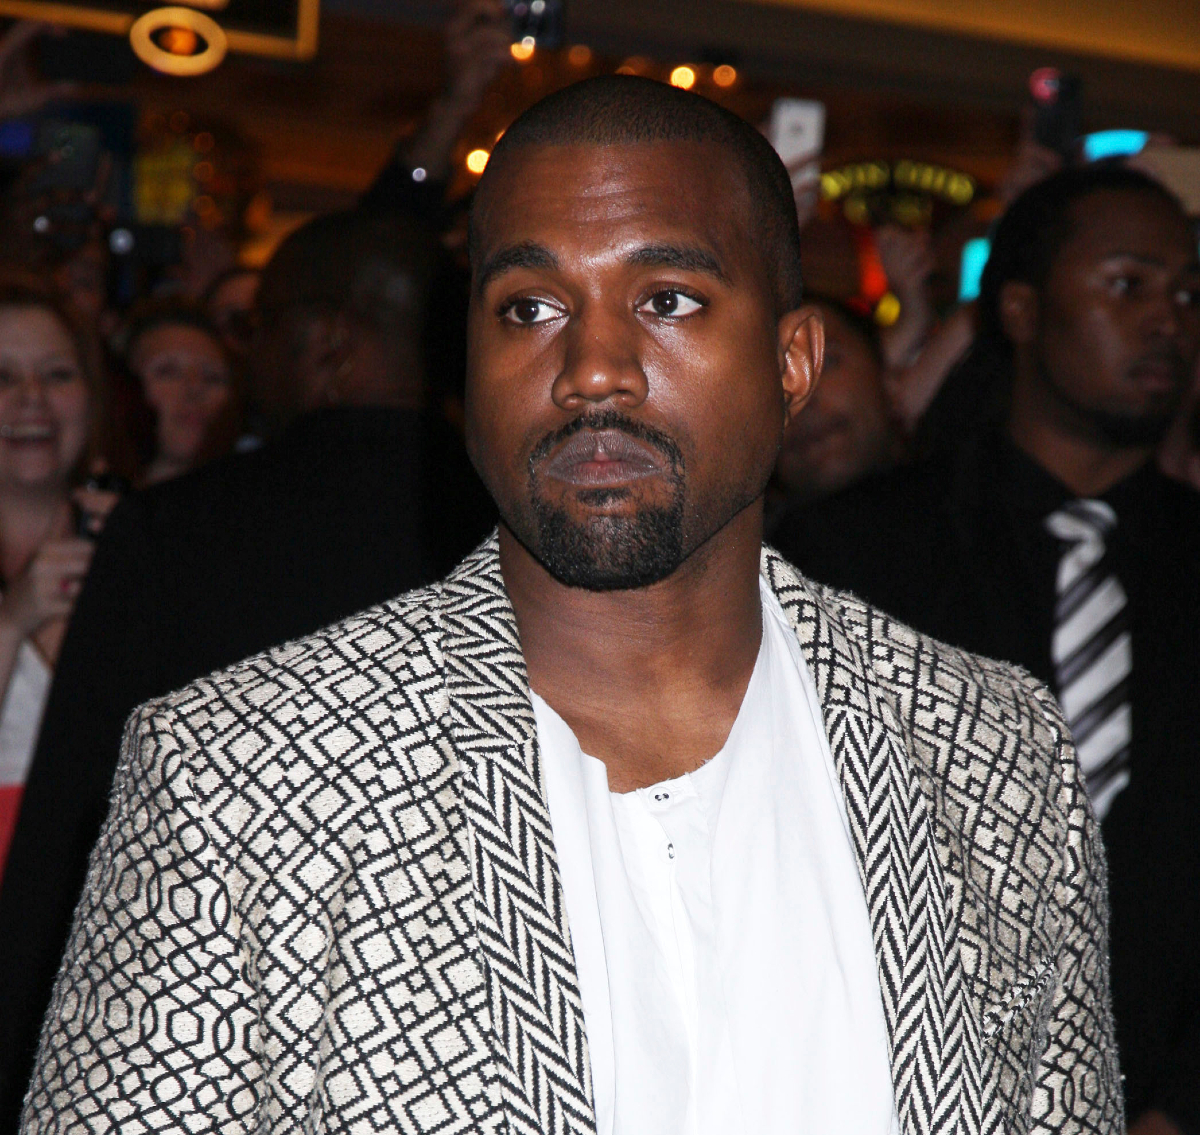 """Kanye West and his Yeezy fashion label filed an """"unfair competition"""" lawsuit against Walmart for selling knockoff Yeezy Foam Runner footwear on its website."""